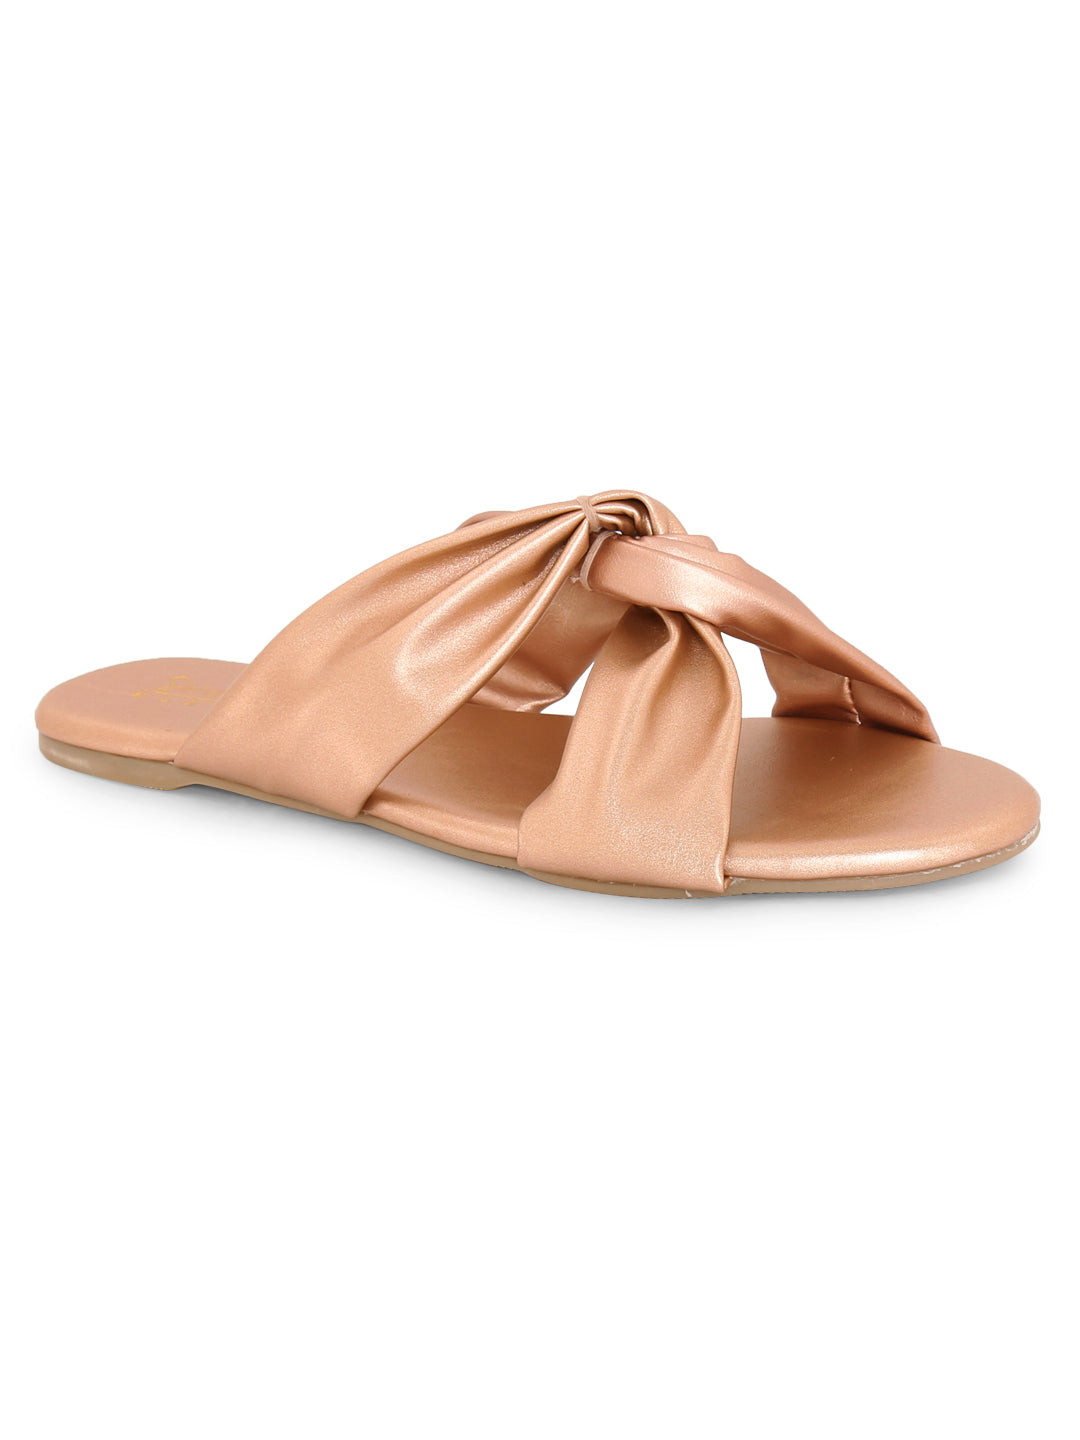 V-Strap Slip-on for Women - Rose Gold